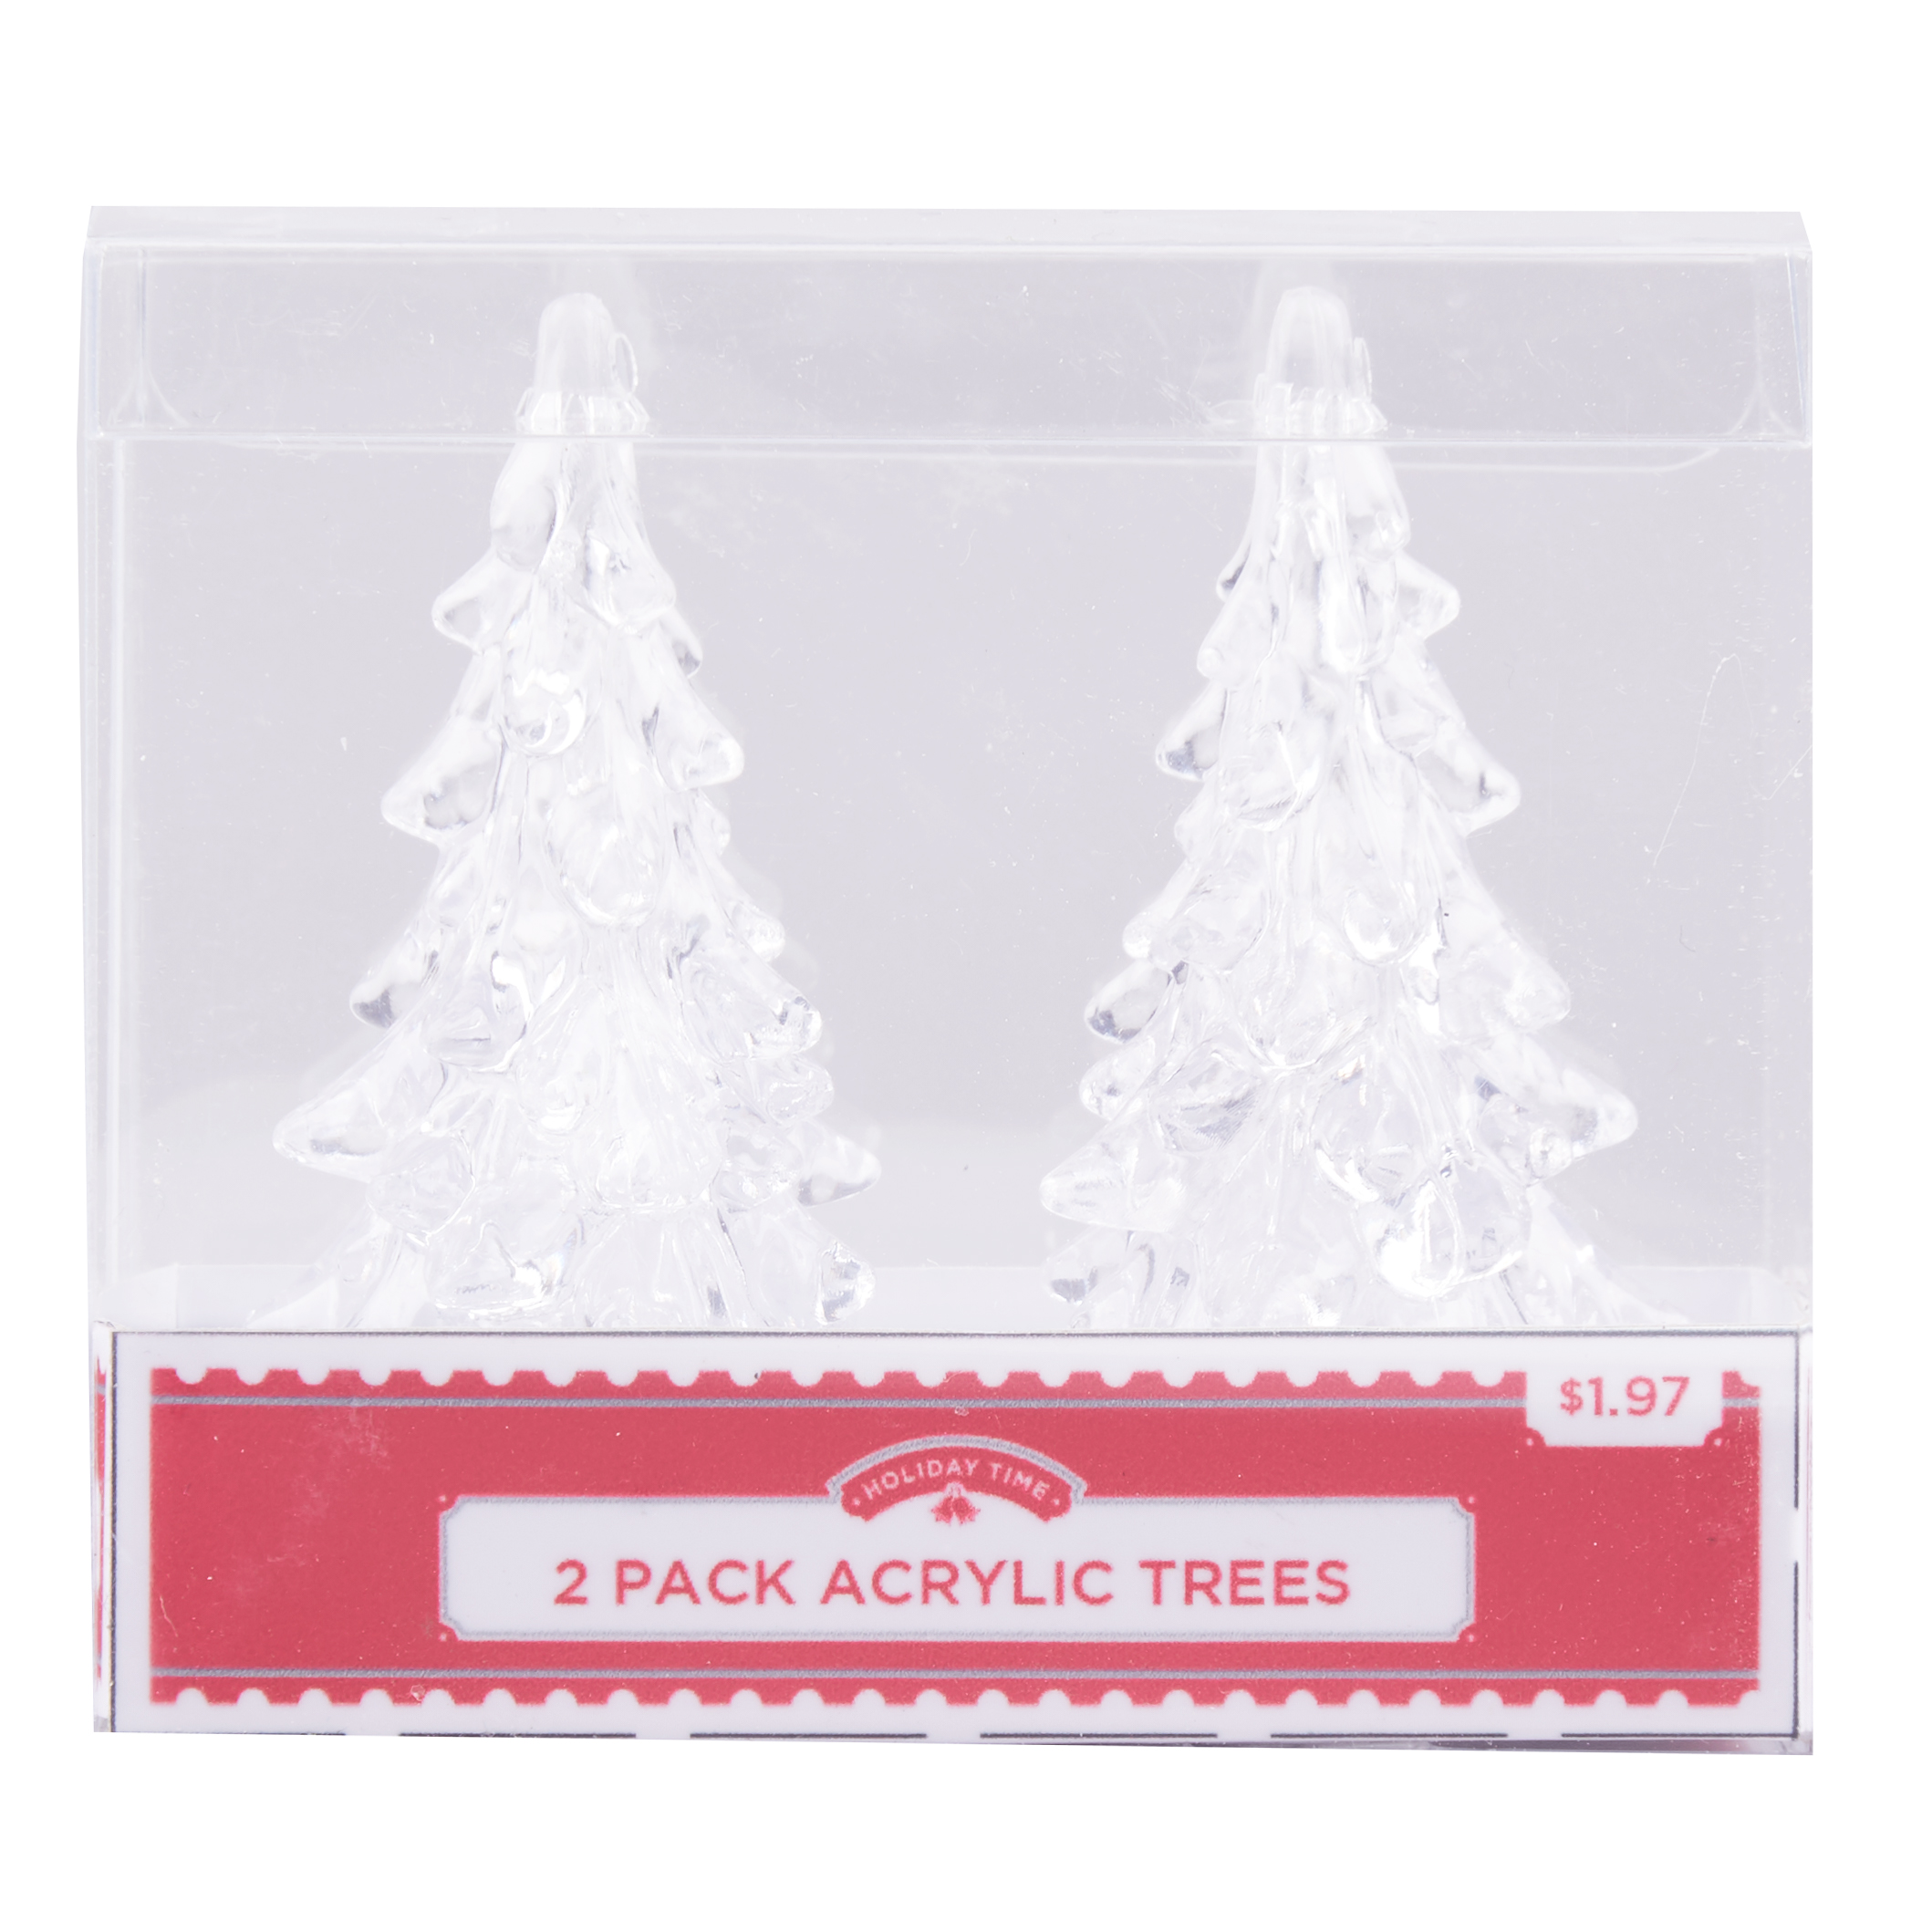 Holiday Time Acrylic Tree, 2 Pack